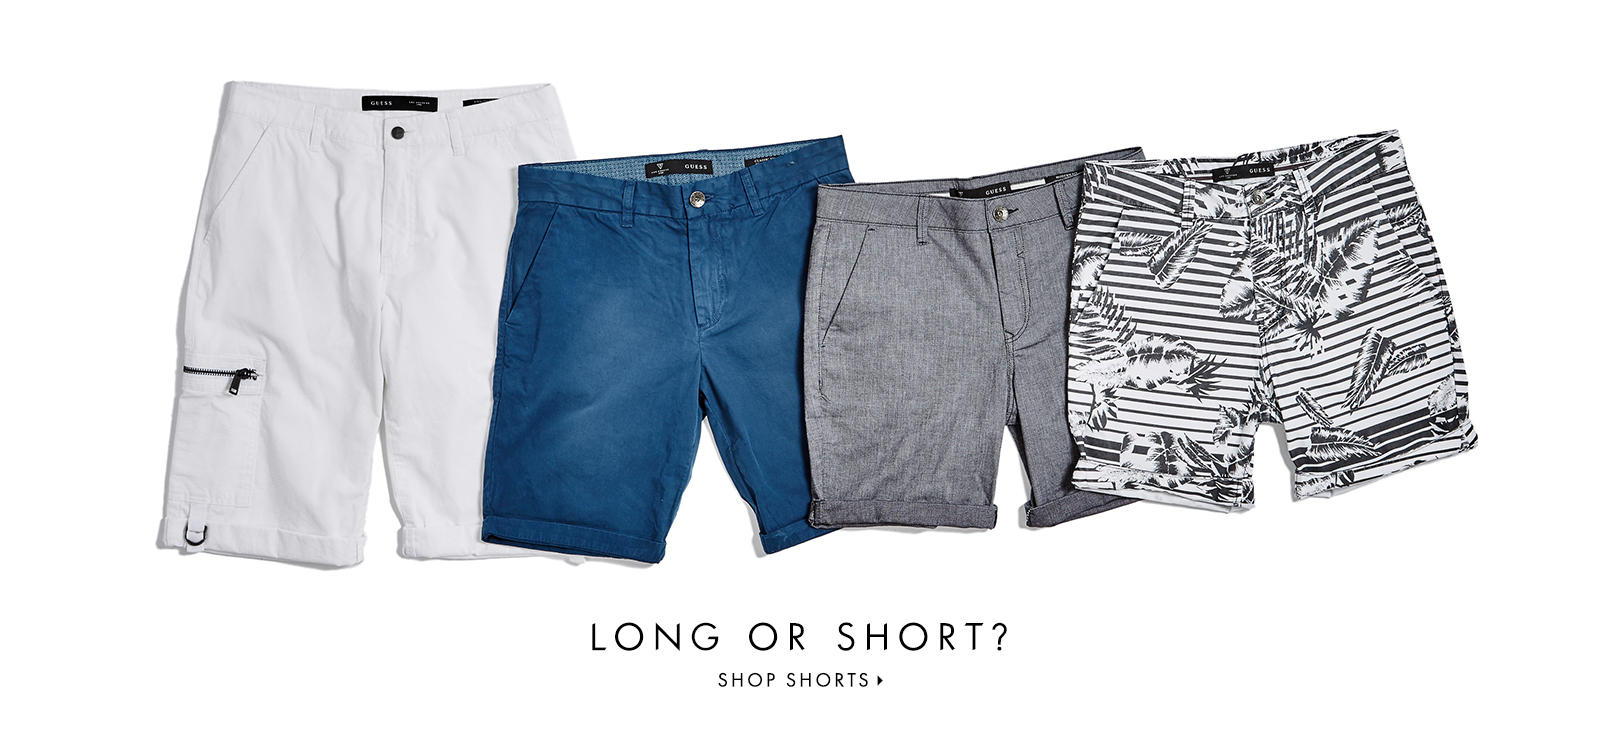 LONG OR SHORT?